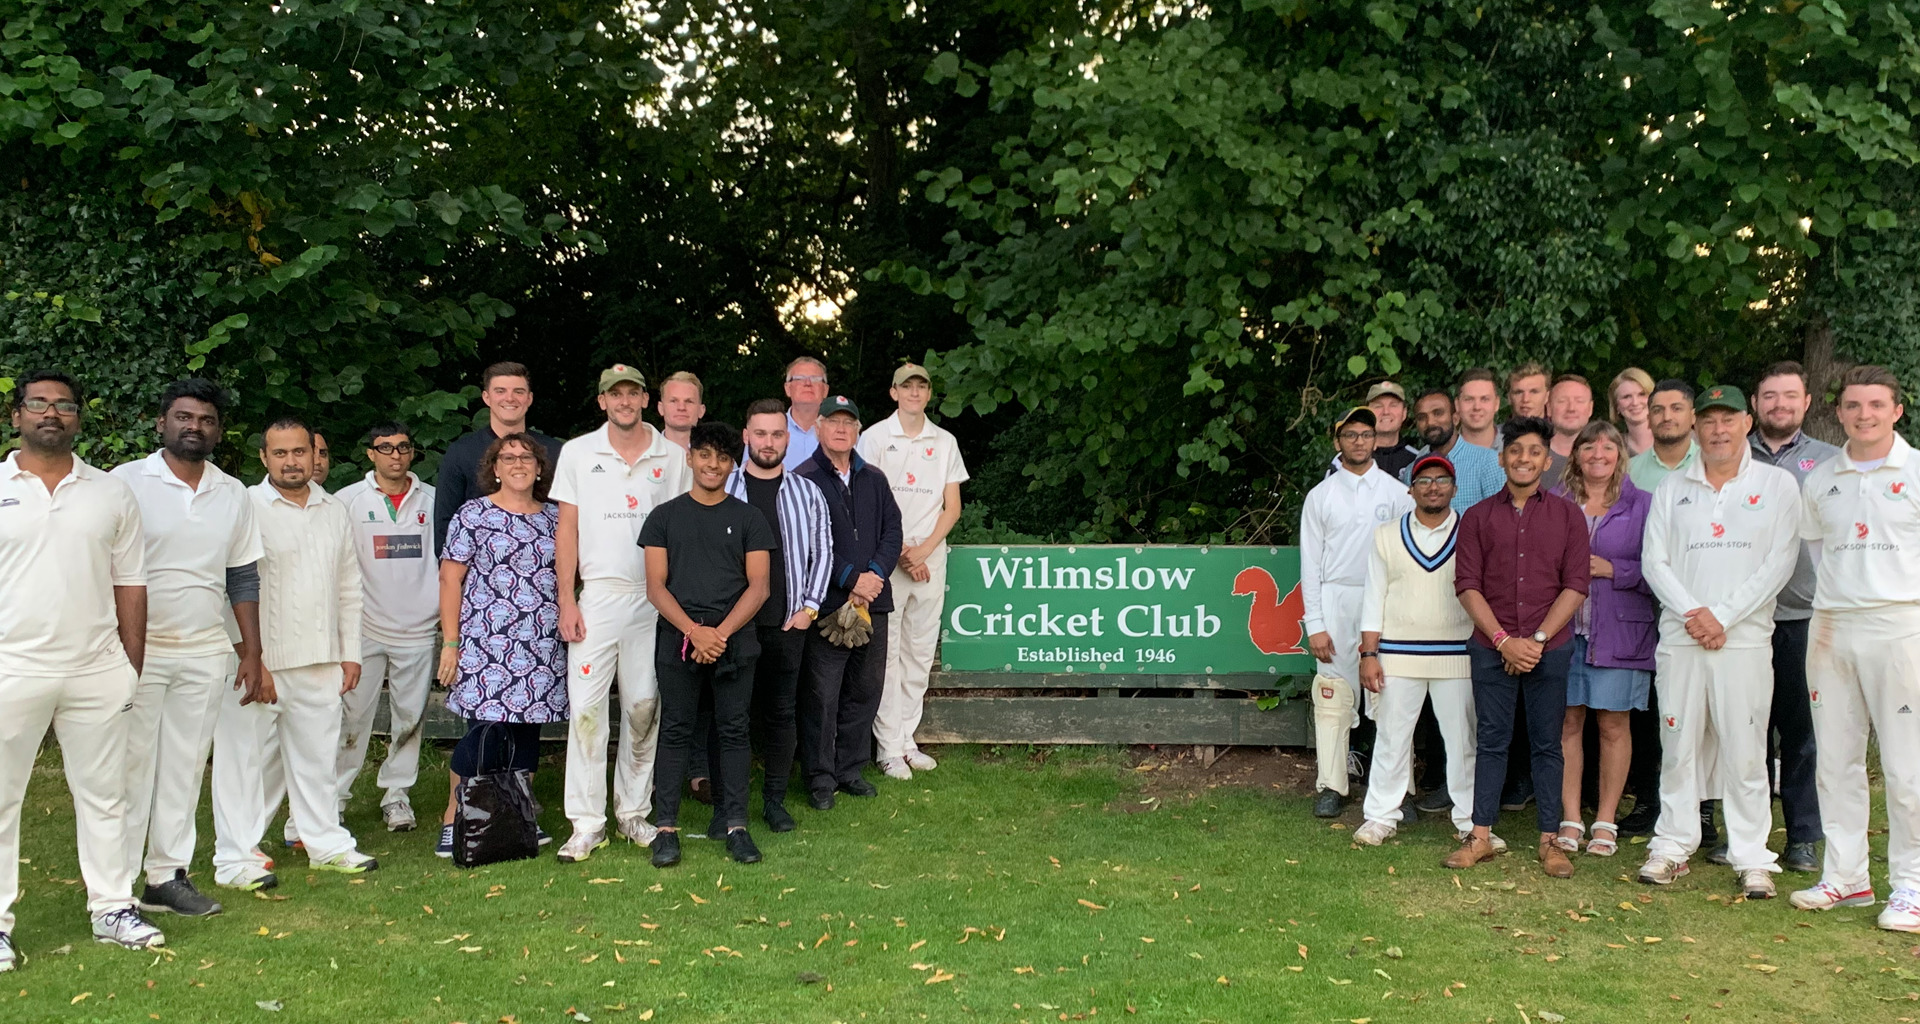 https://wilmslowcricketclub.com/wp-content/uploads/2020/01/Website-Single-Sheet-1.jpg